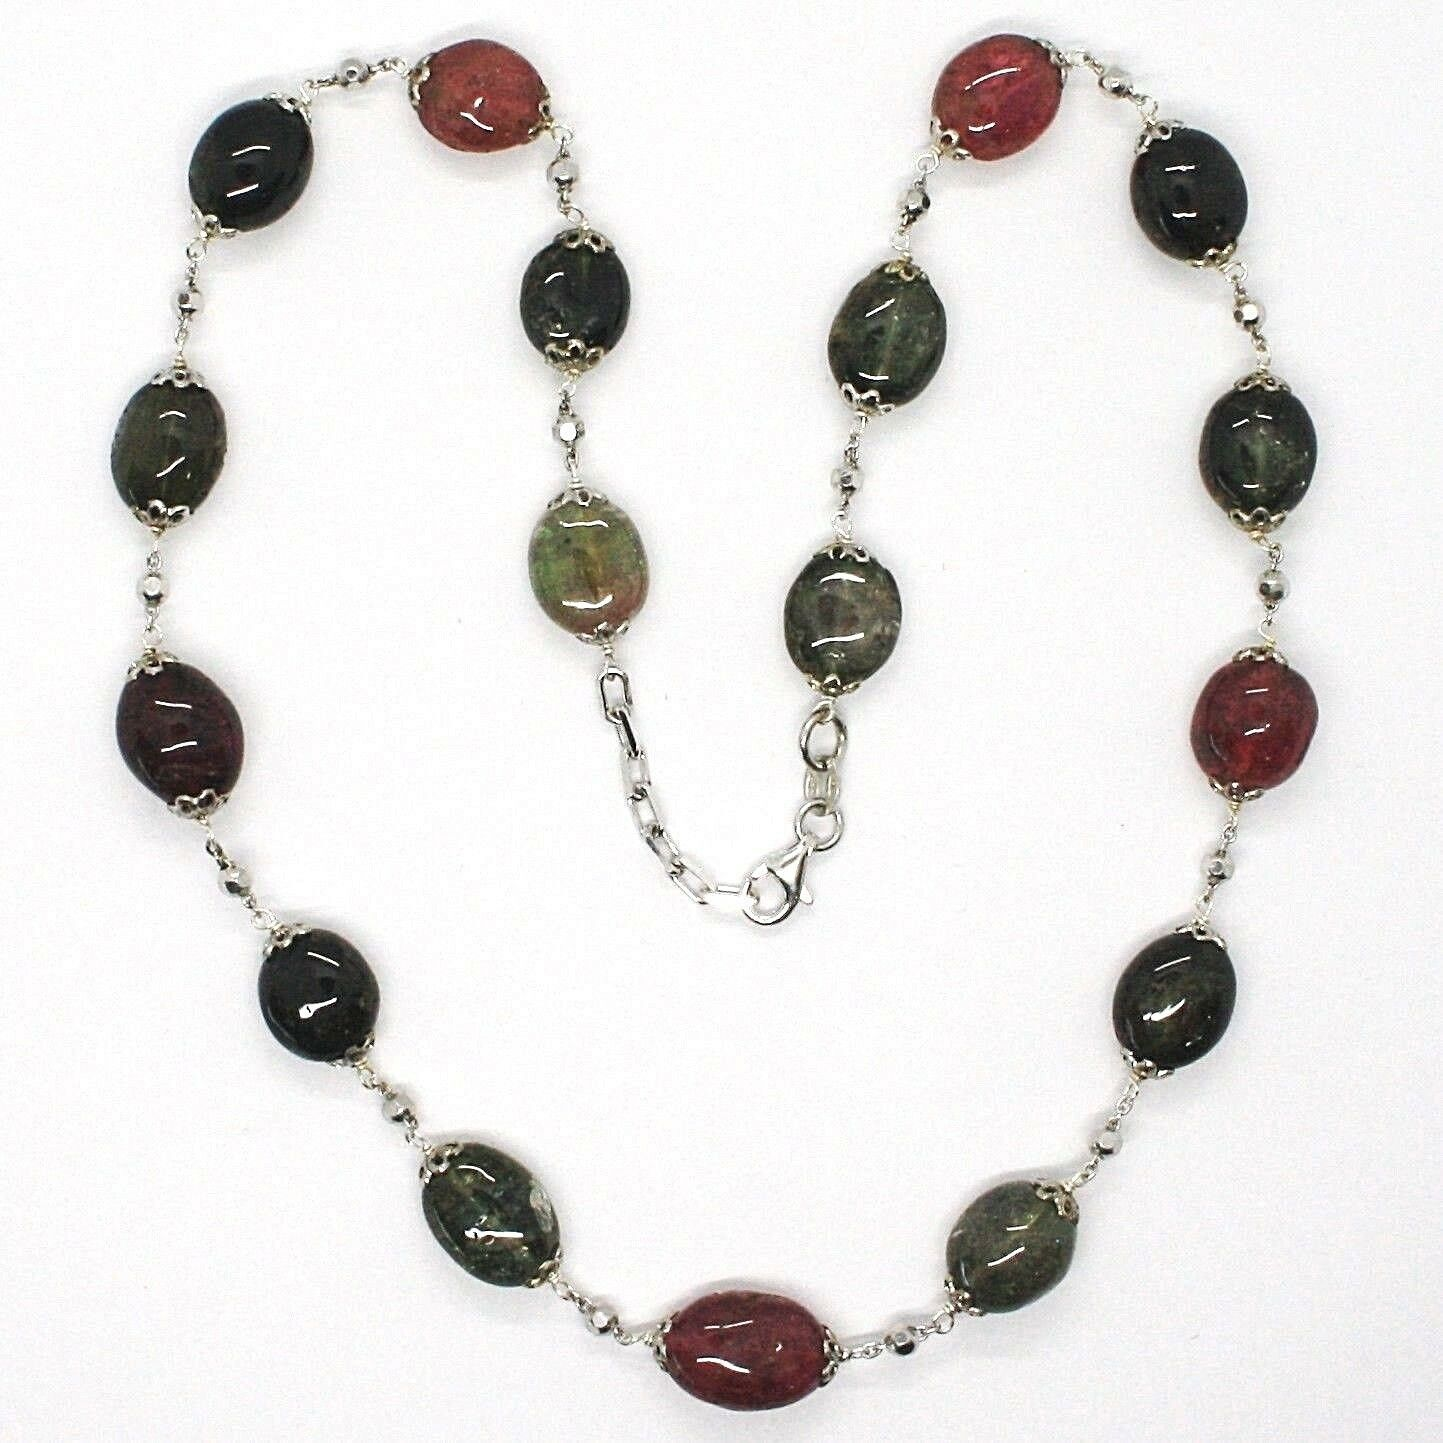 SILVER 925 NECKLACE, TOURMALINE OVALS, GREEN AND REDHEAD, SPHERES FACETED